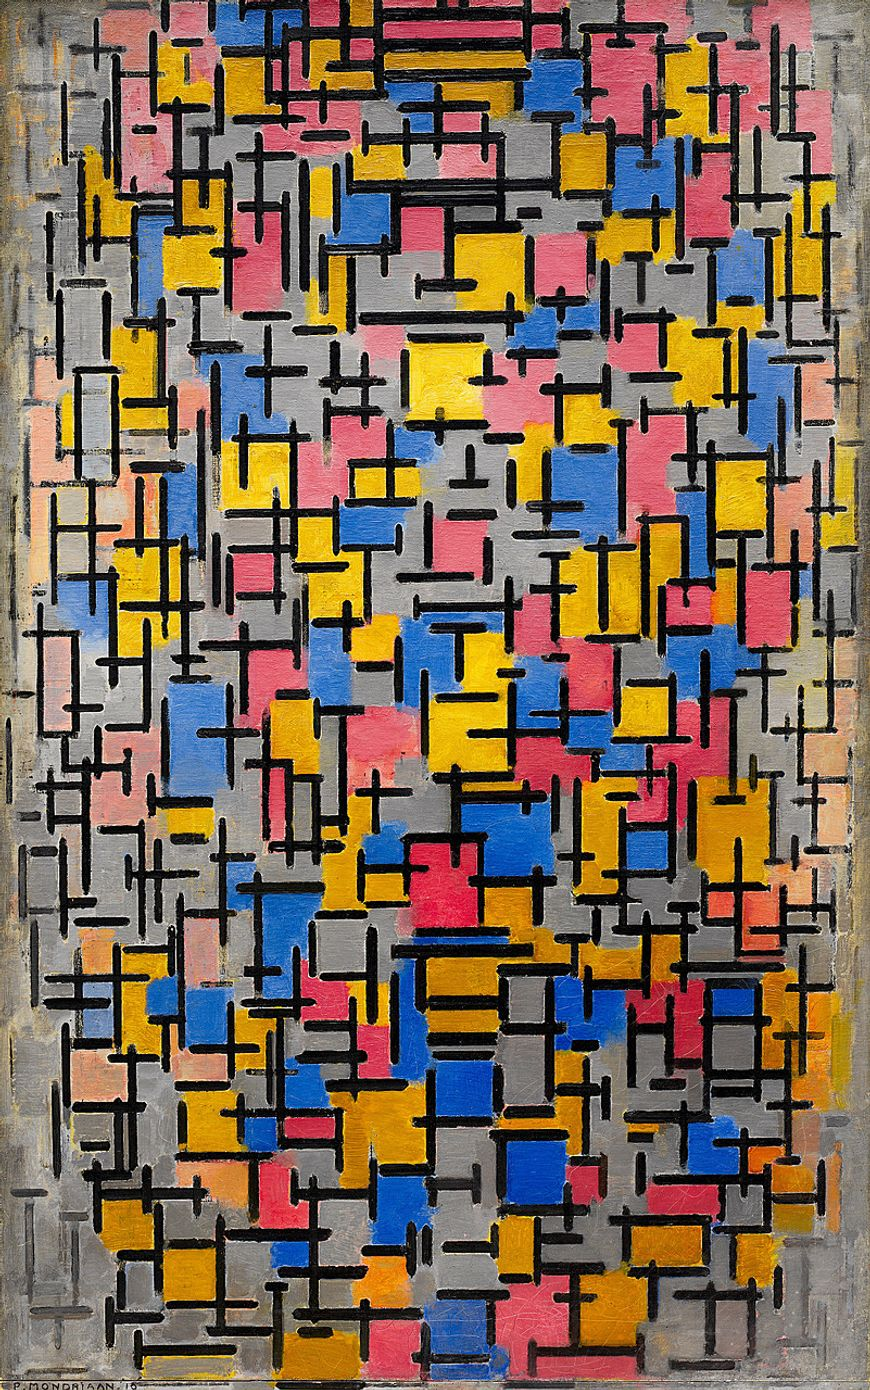 Piet Mondrian, Composition, 1916. Oil on canvas, with wood, 47 1/4 x 29 3/4 inches (120 x 75.6 cm)